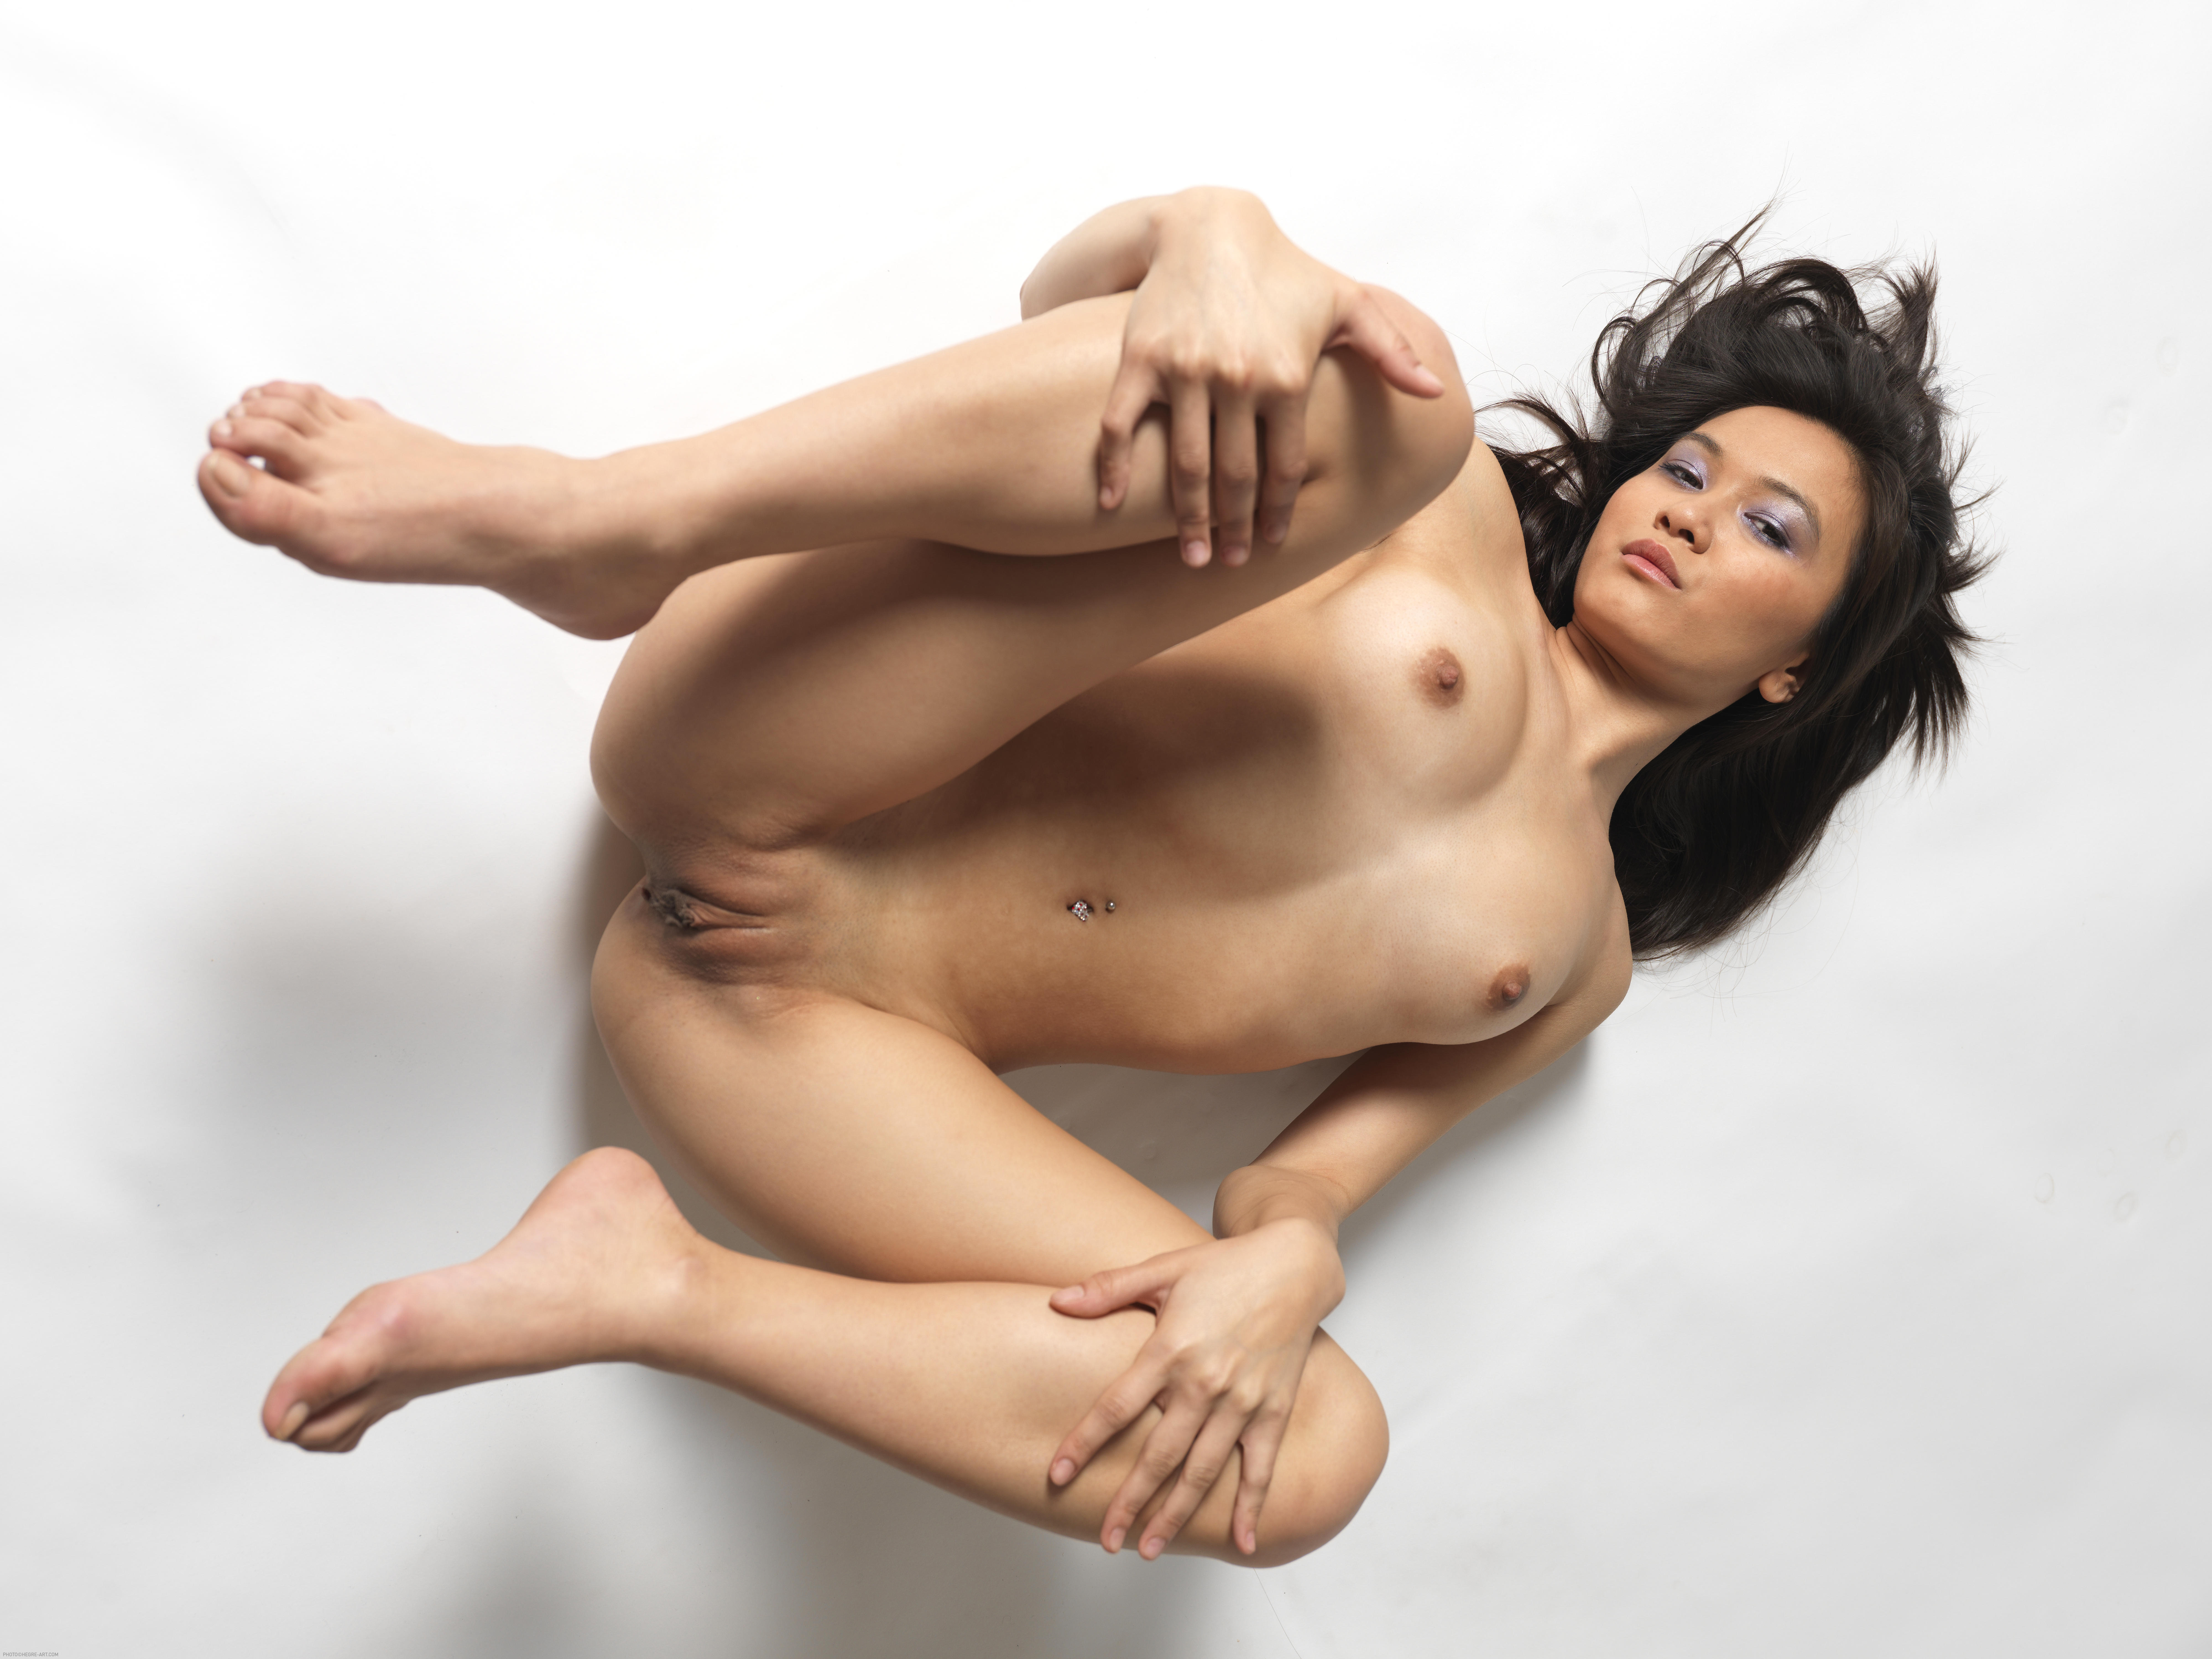 free pre mature ejacultion videos